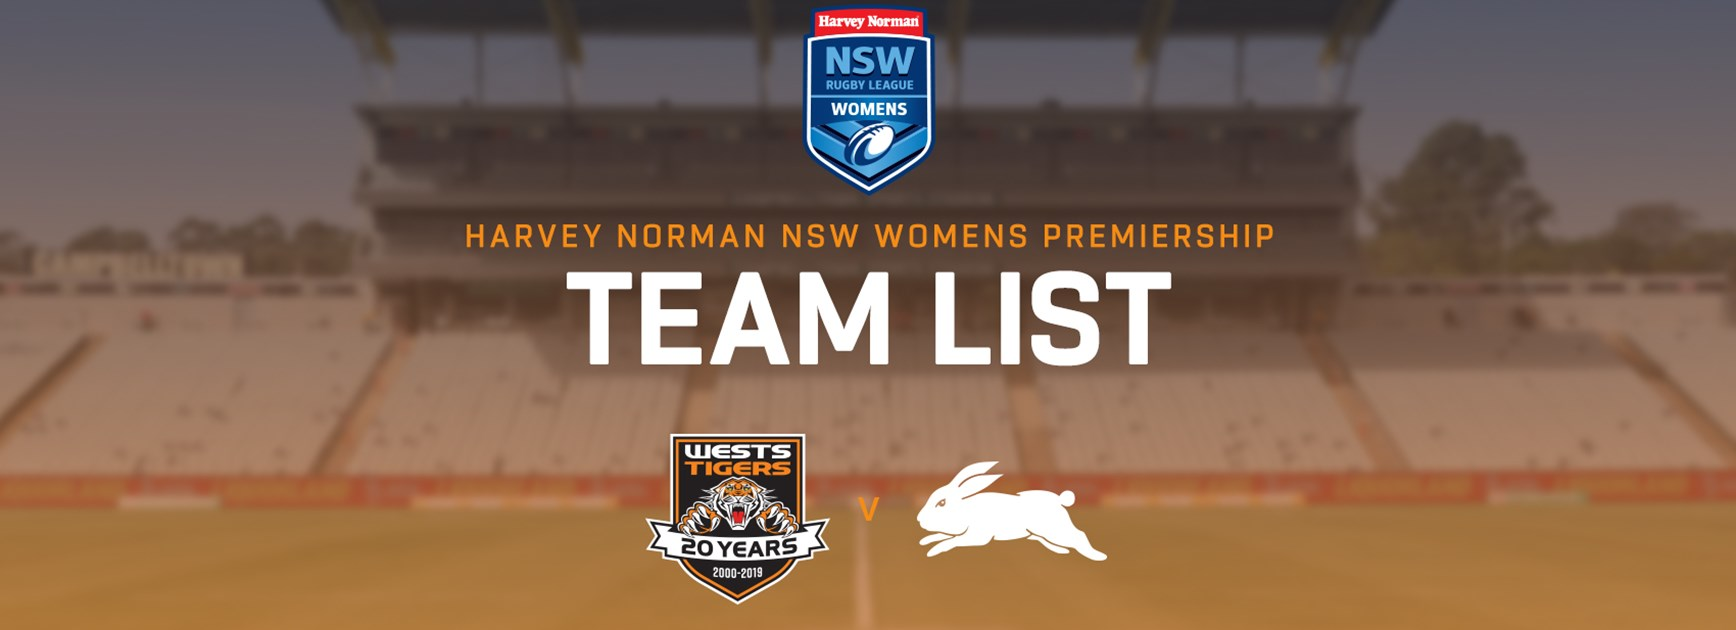 Harvey Norman NSW Women's Premiership Team Announcement: Round 15